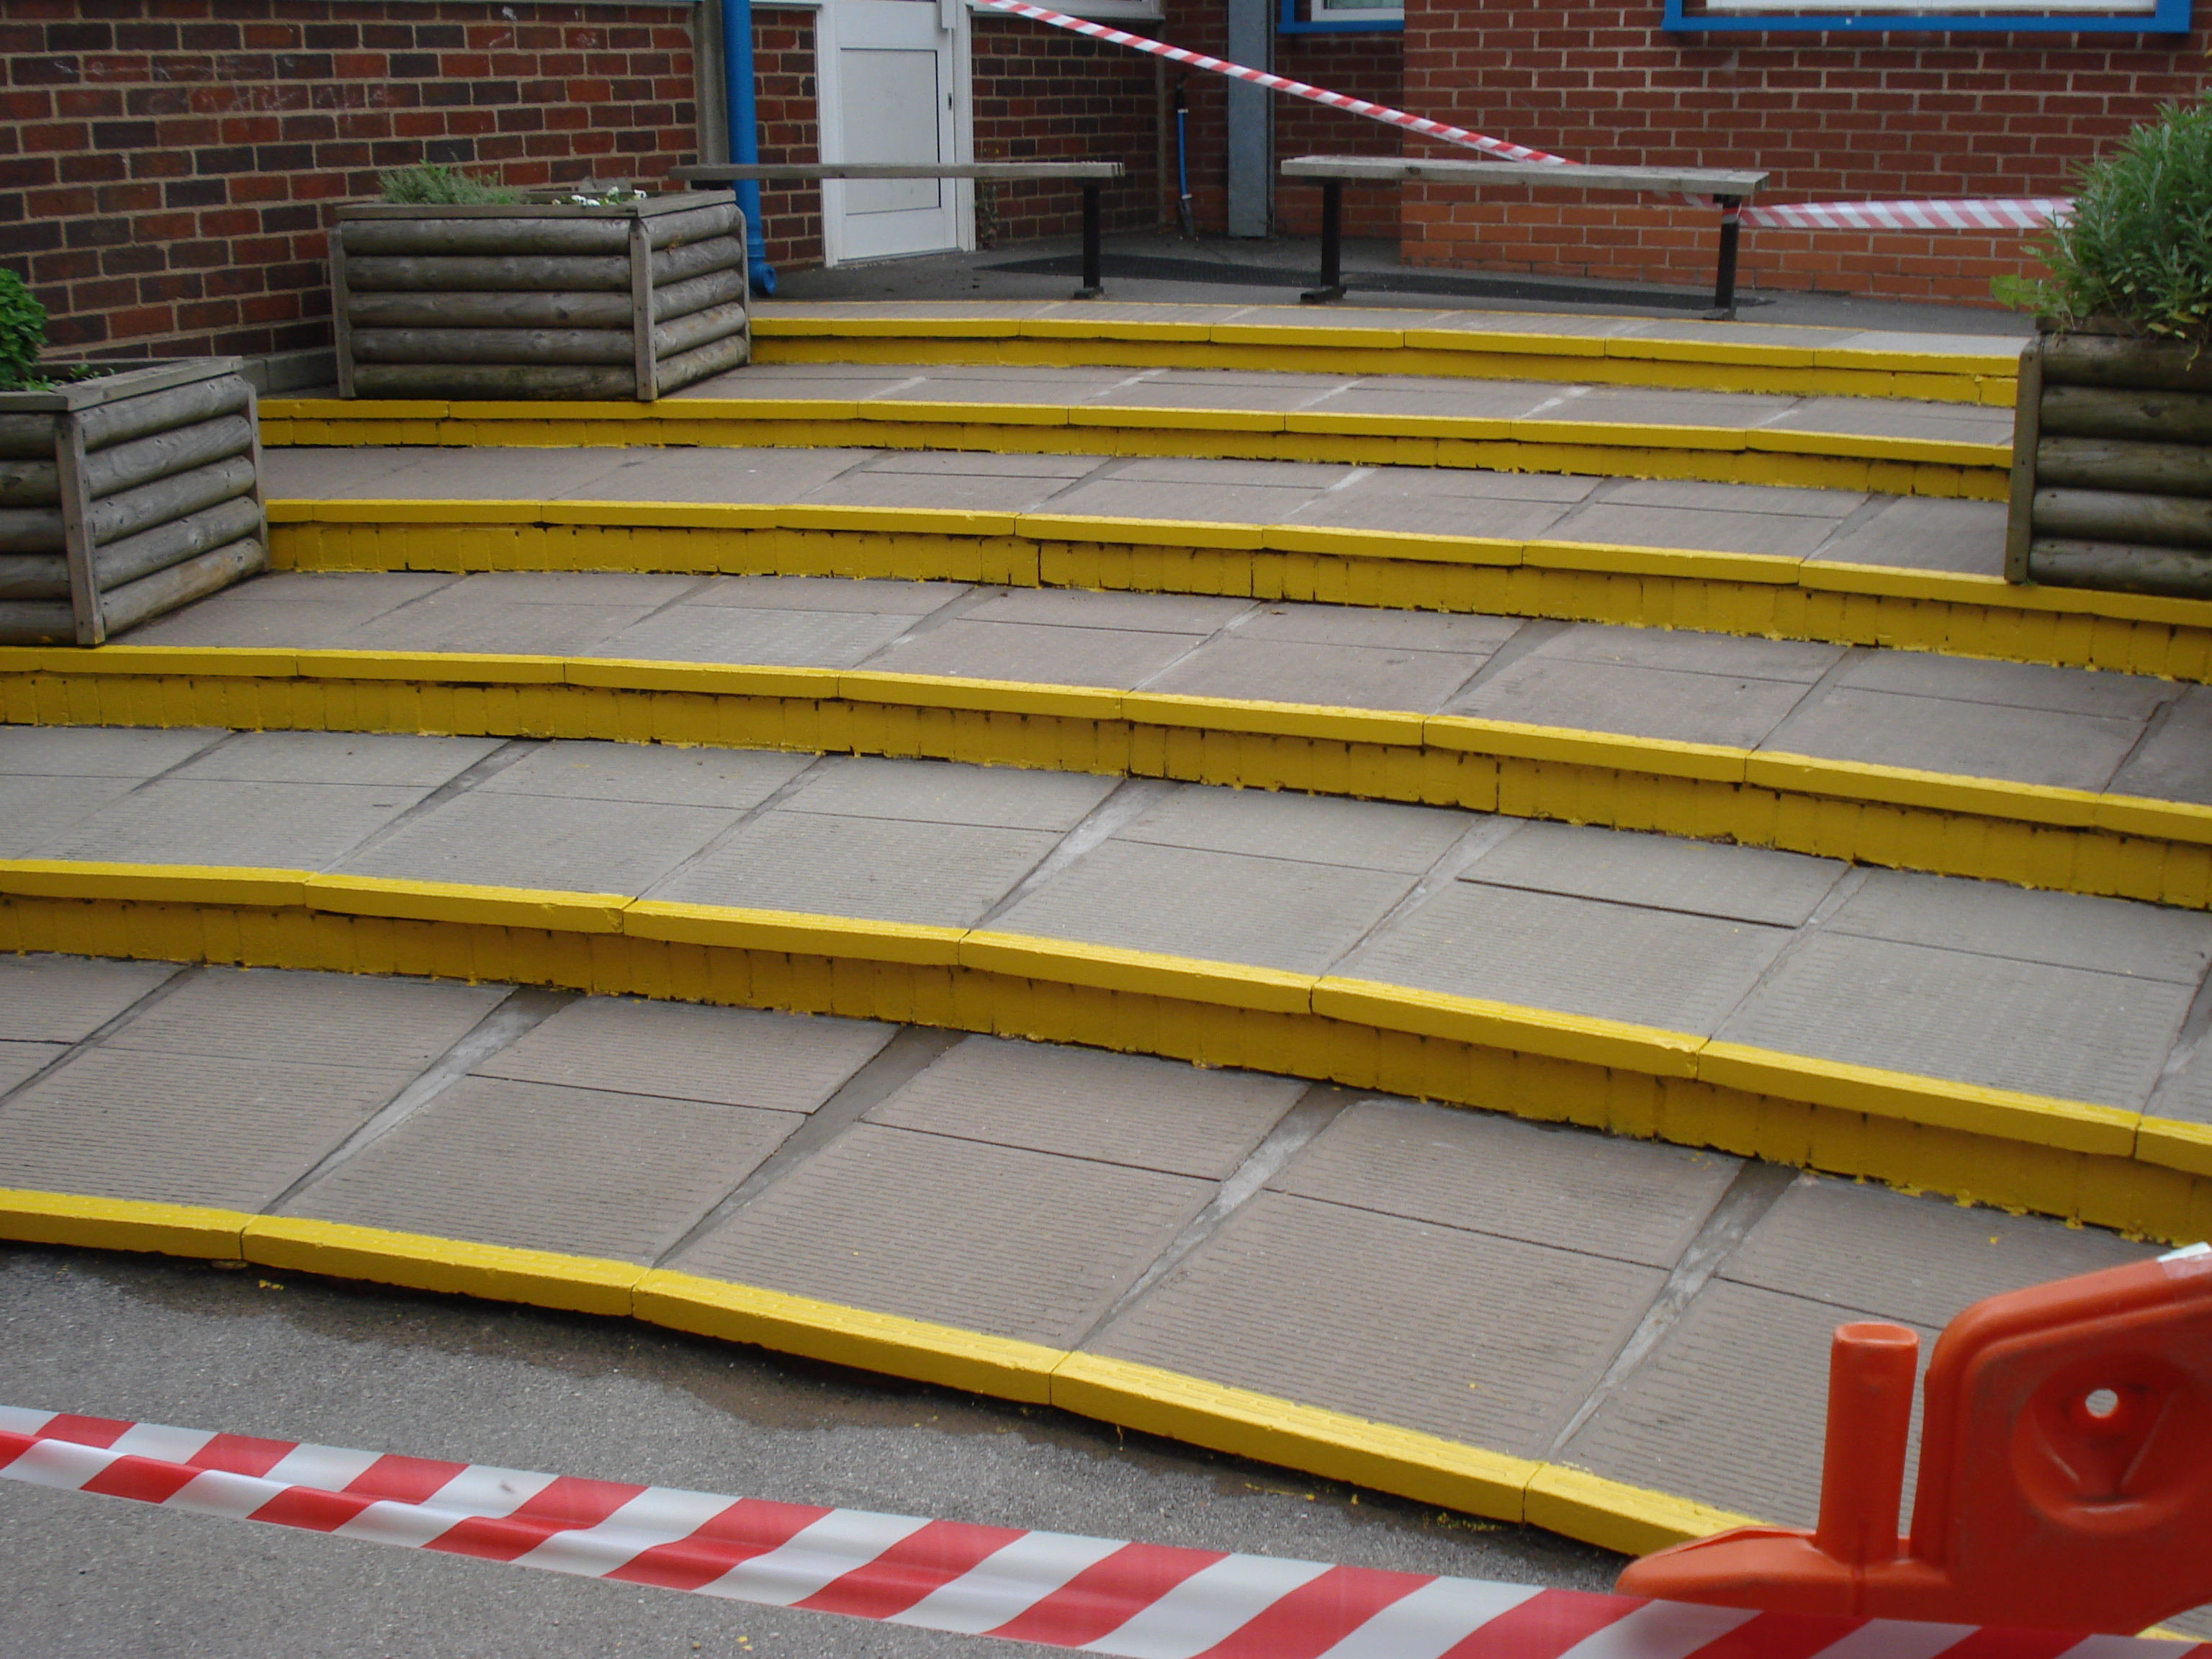 spa paving - school safety steps